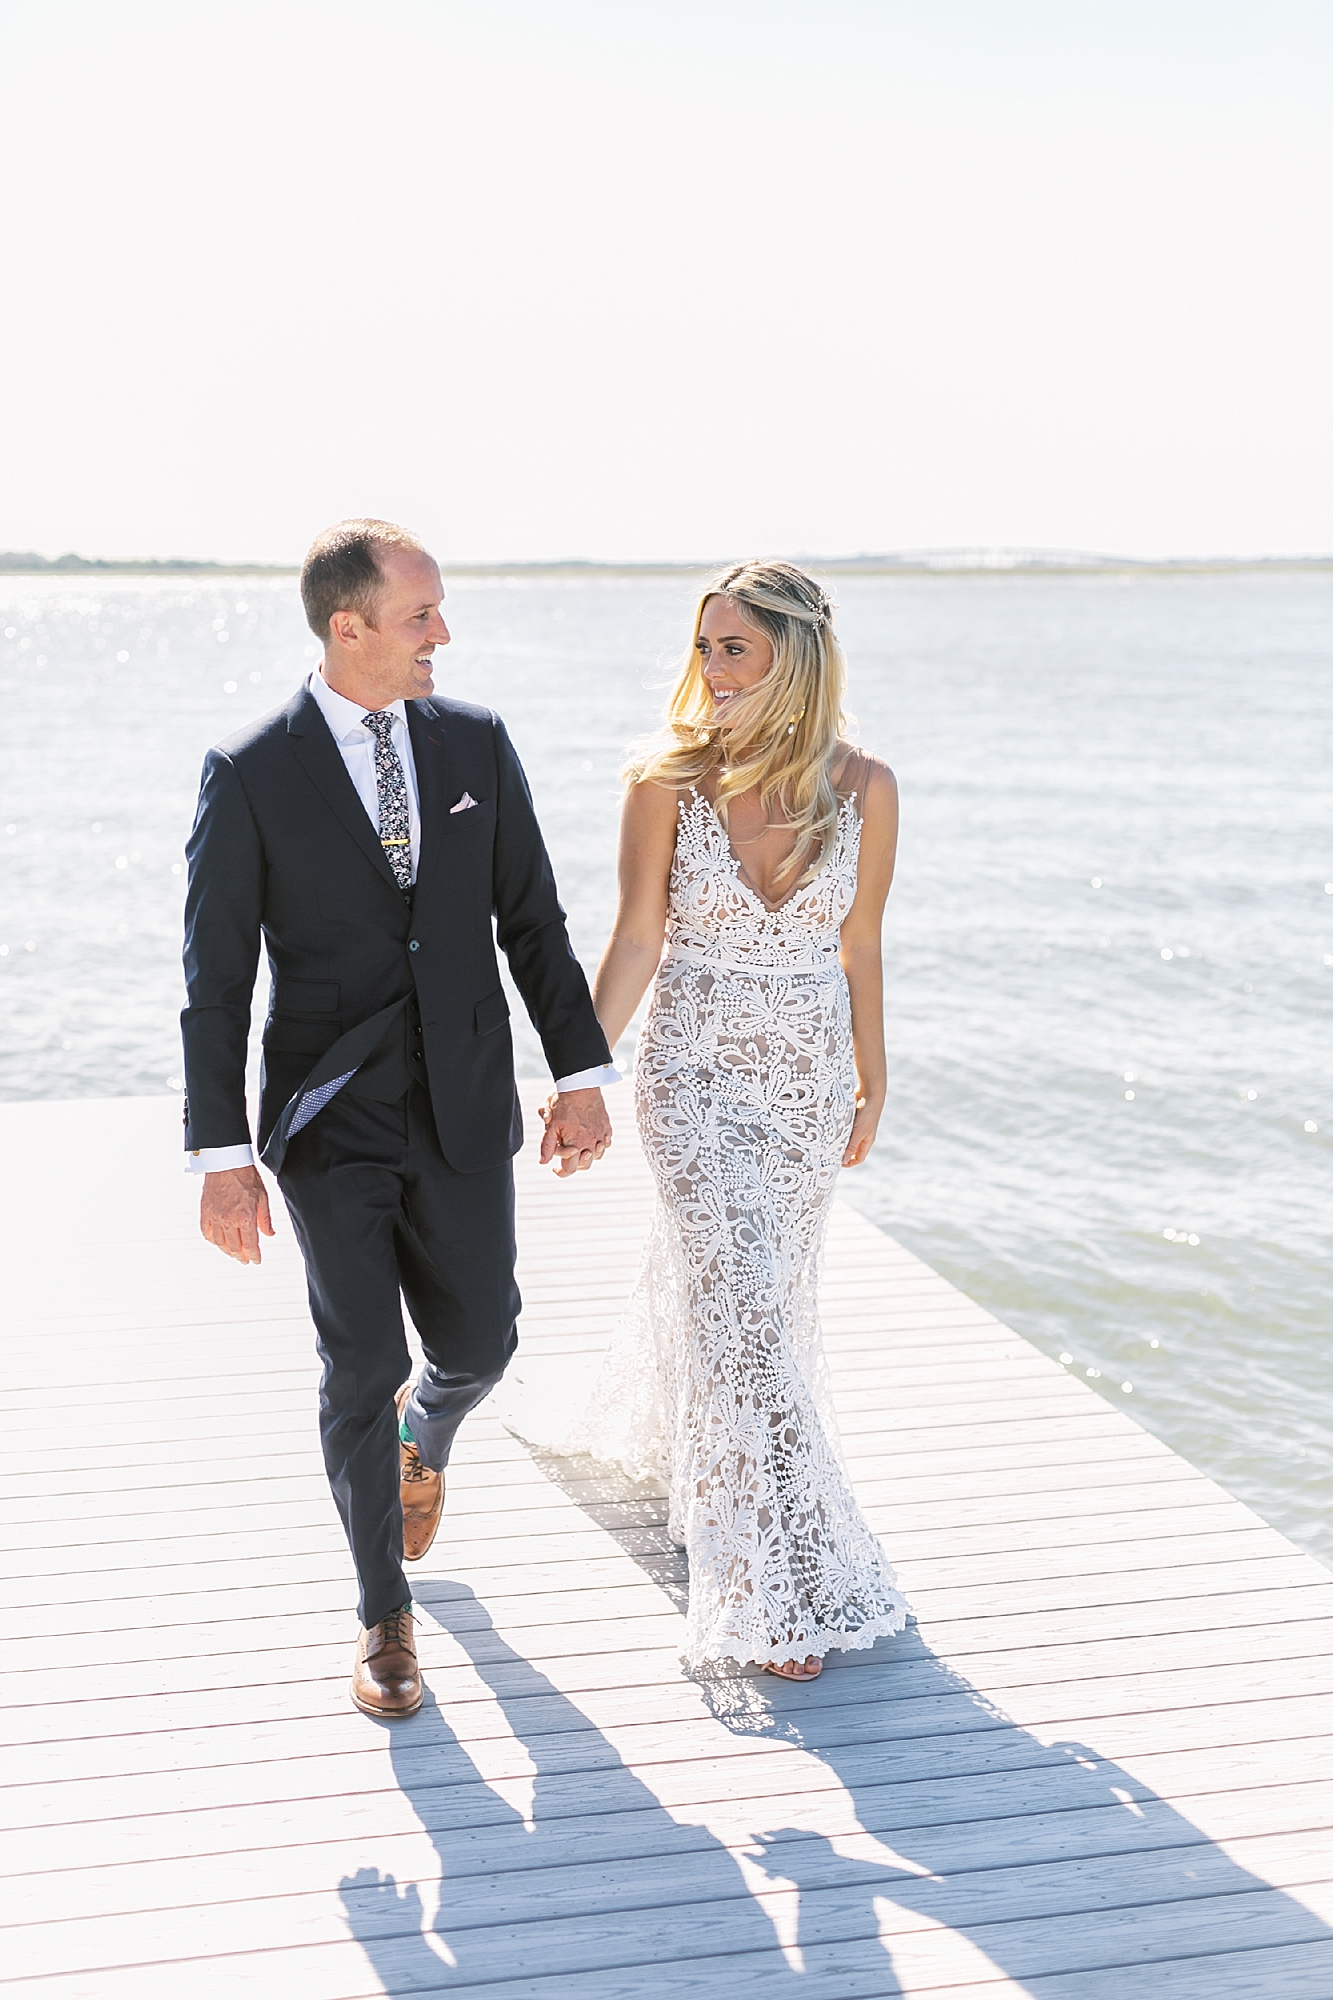 Stylish and Free Spirited Wedding Photography at One Atlantic in Atlantic City NJ by Magdalena Studios 0044 1